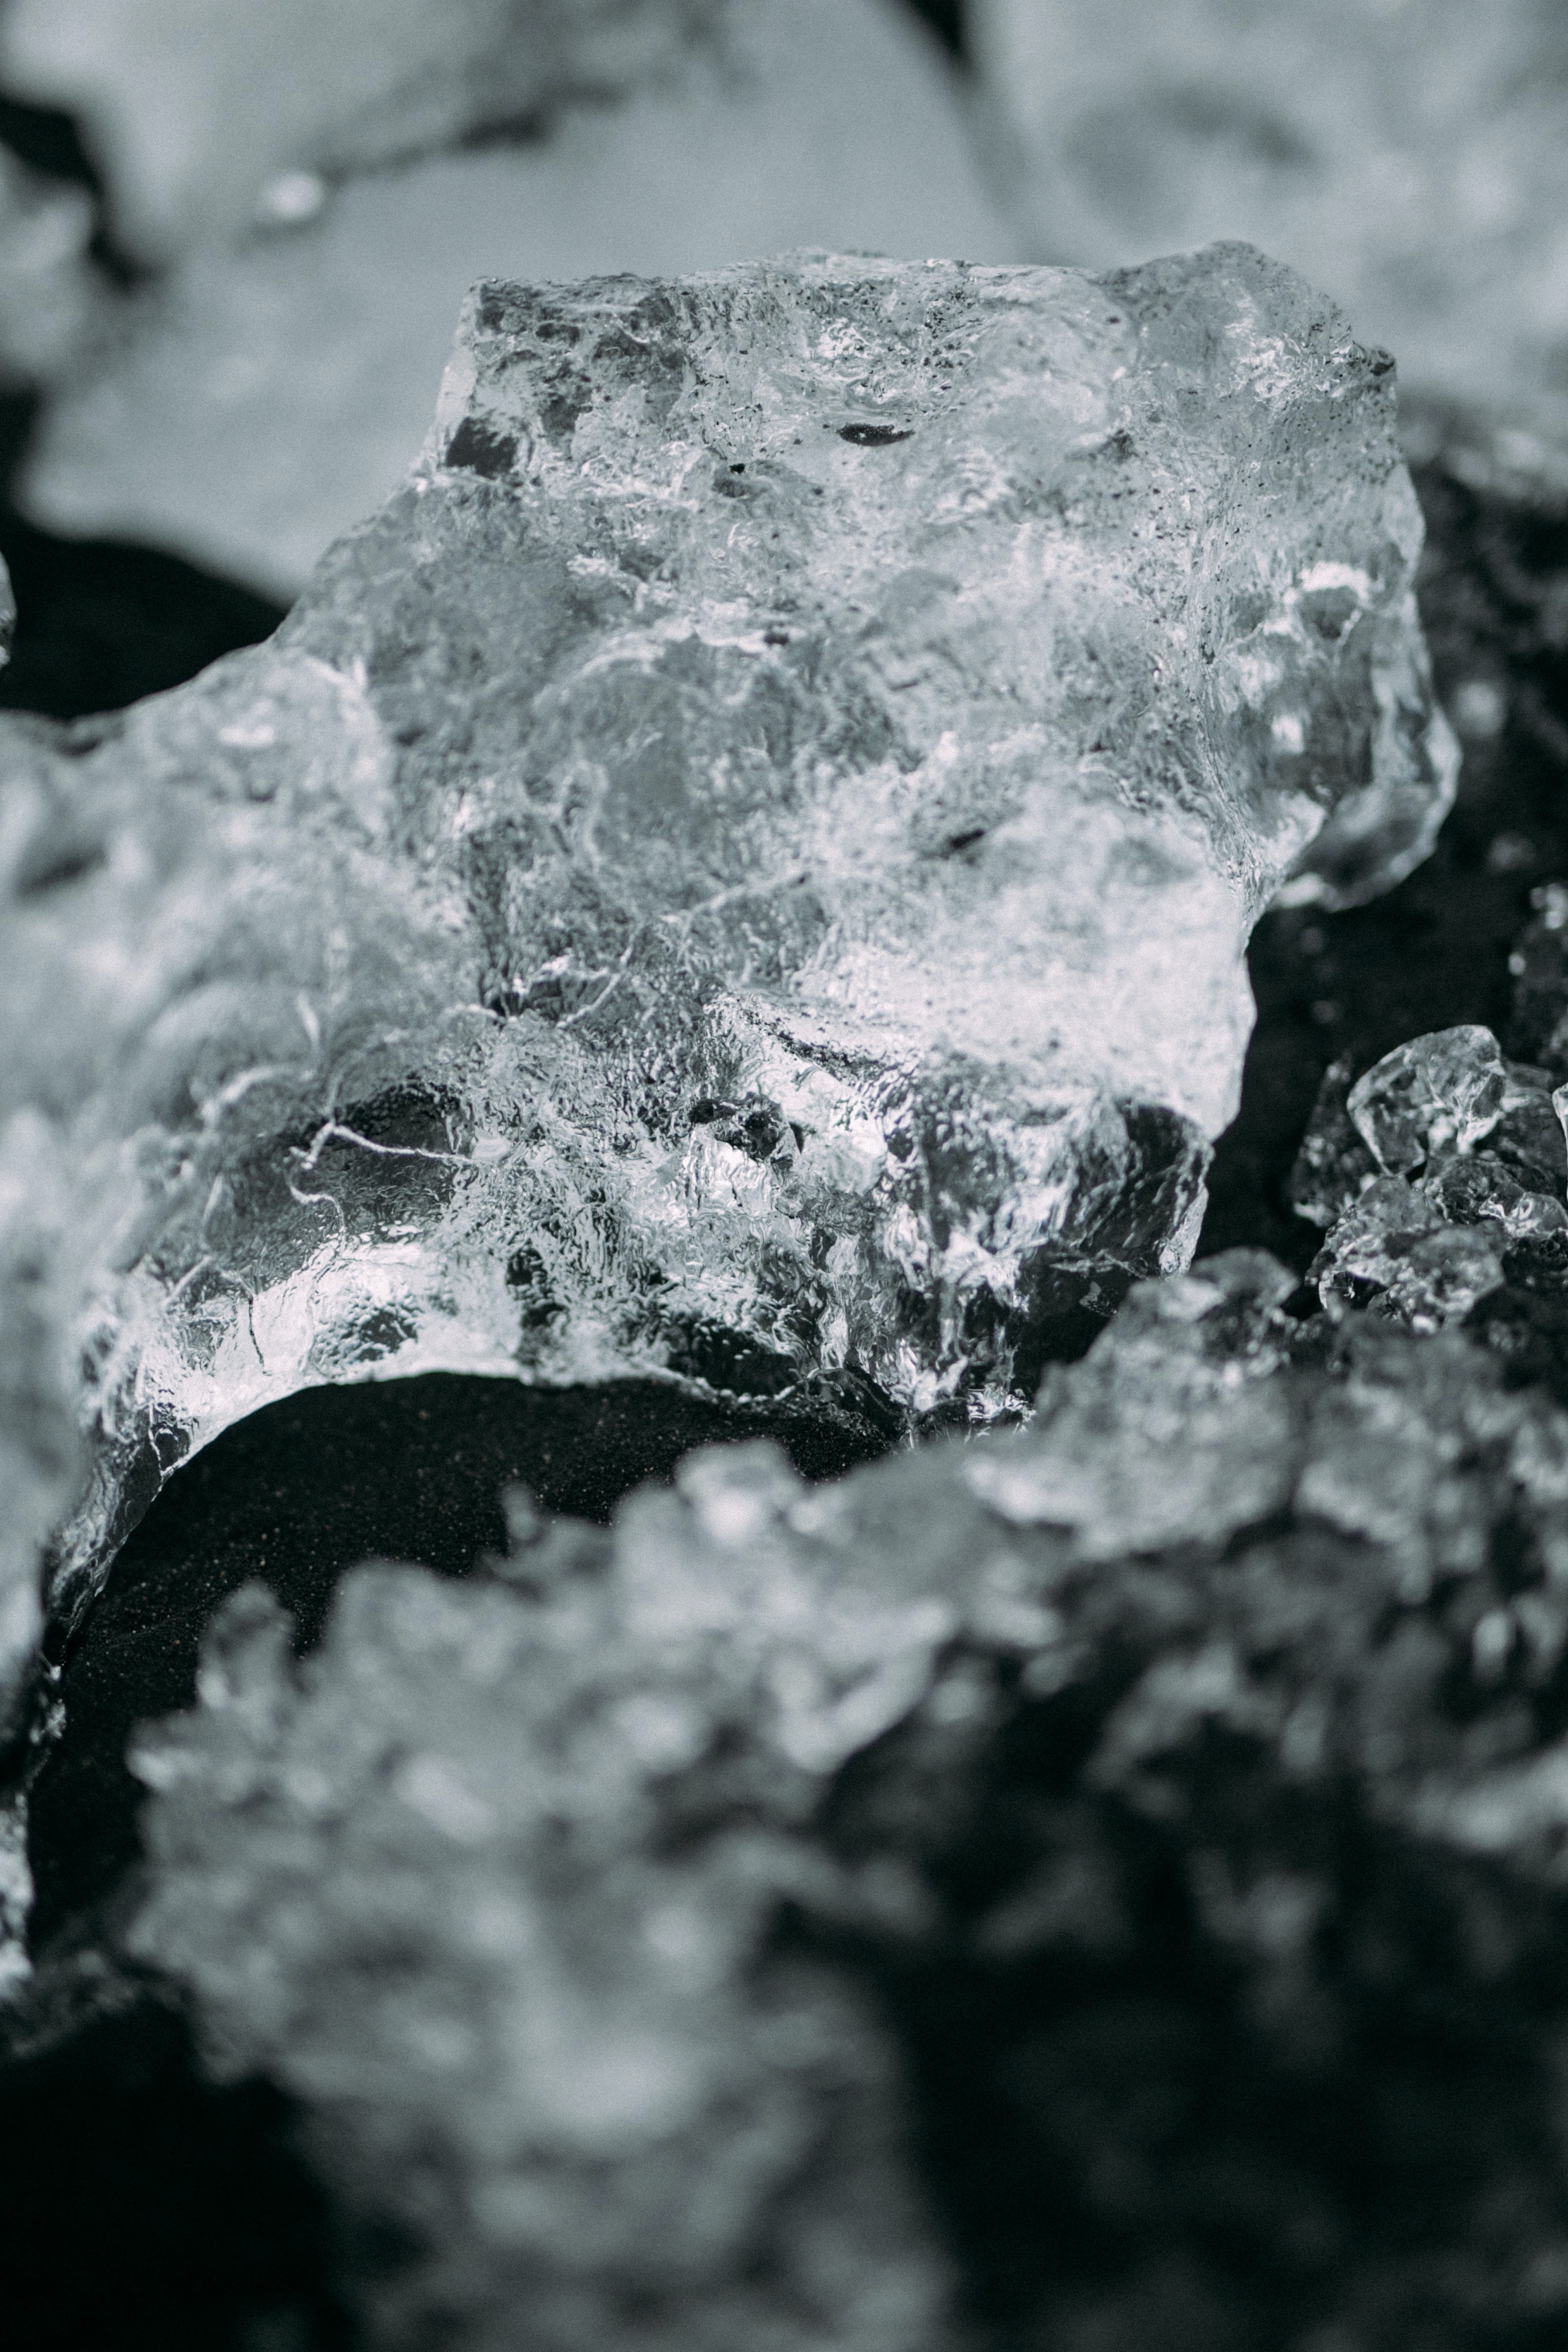 Ice forms into crystal and contrasts with dark soil